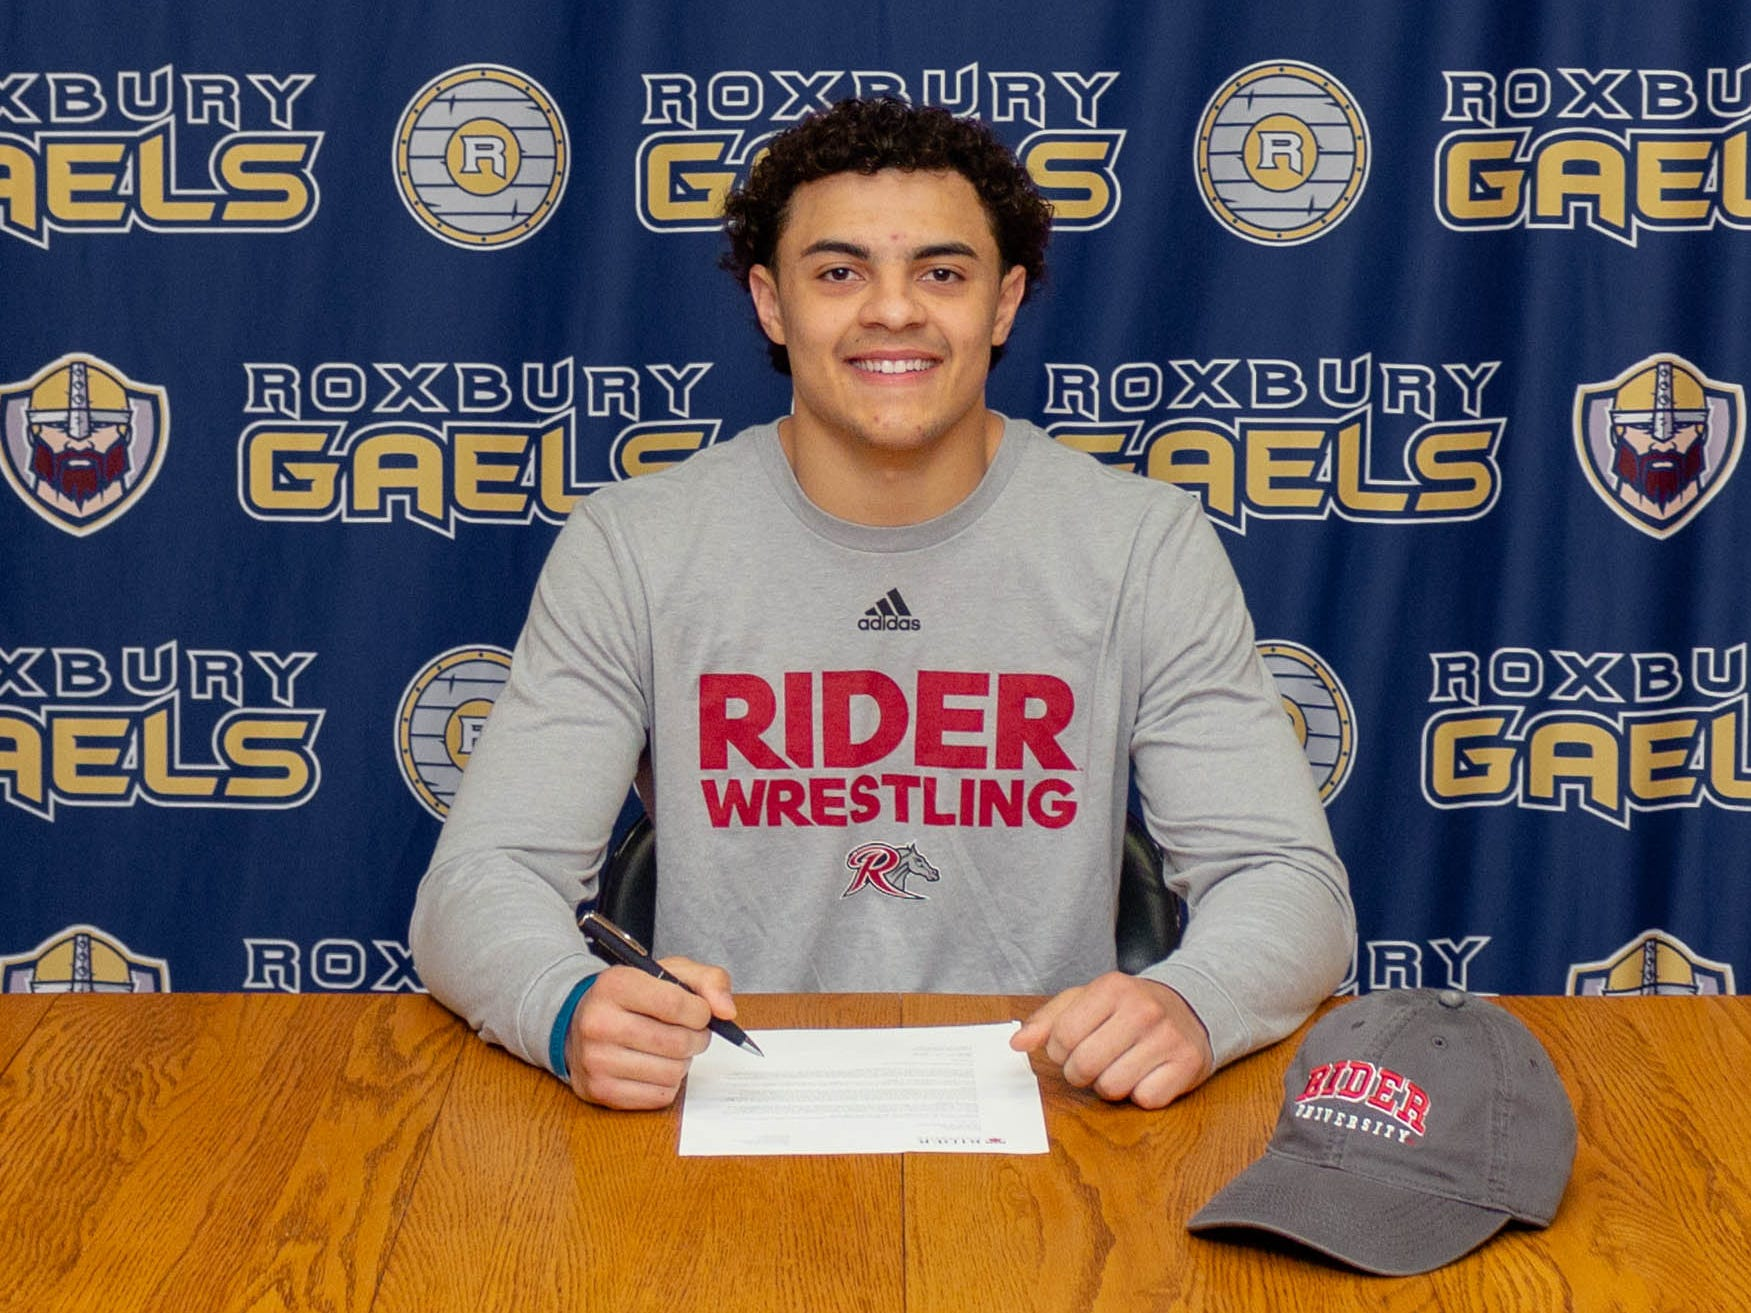 Roxbury senior Evan Vazquez signed a National Letter of Intent with Rider wrestling on Friday.